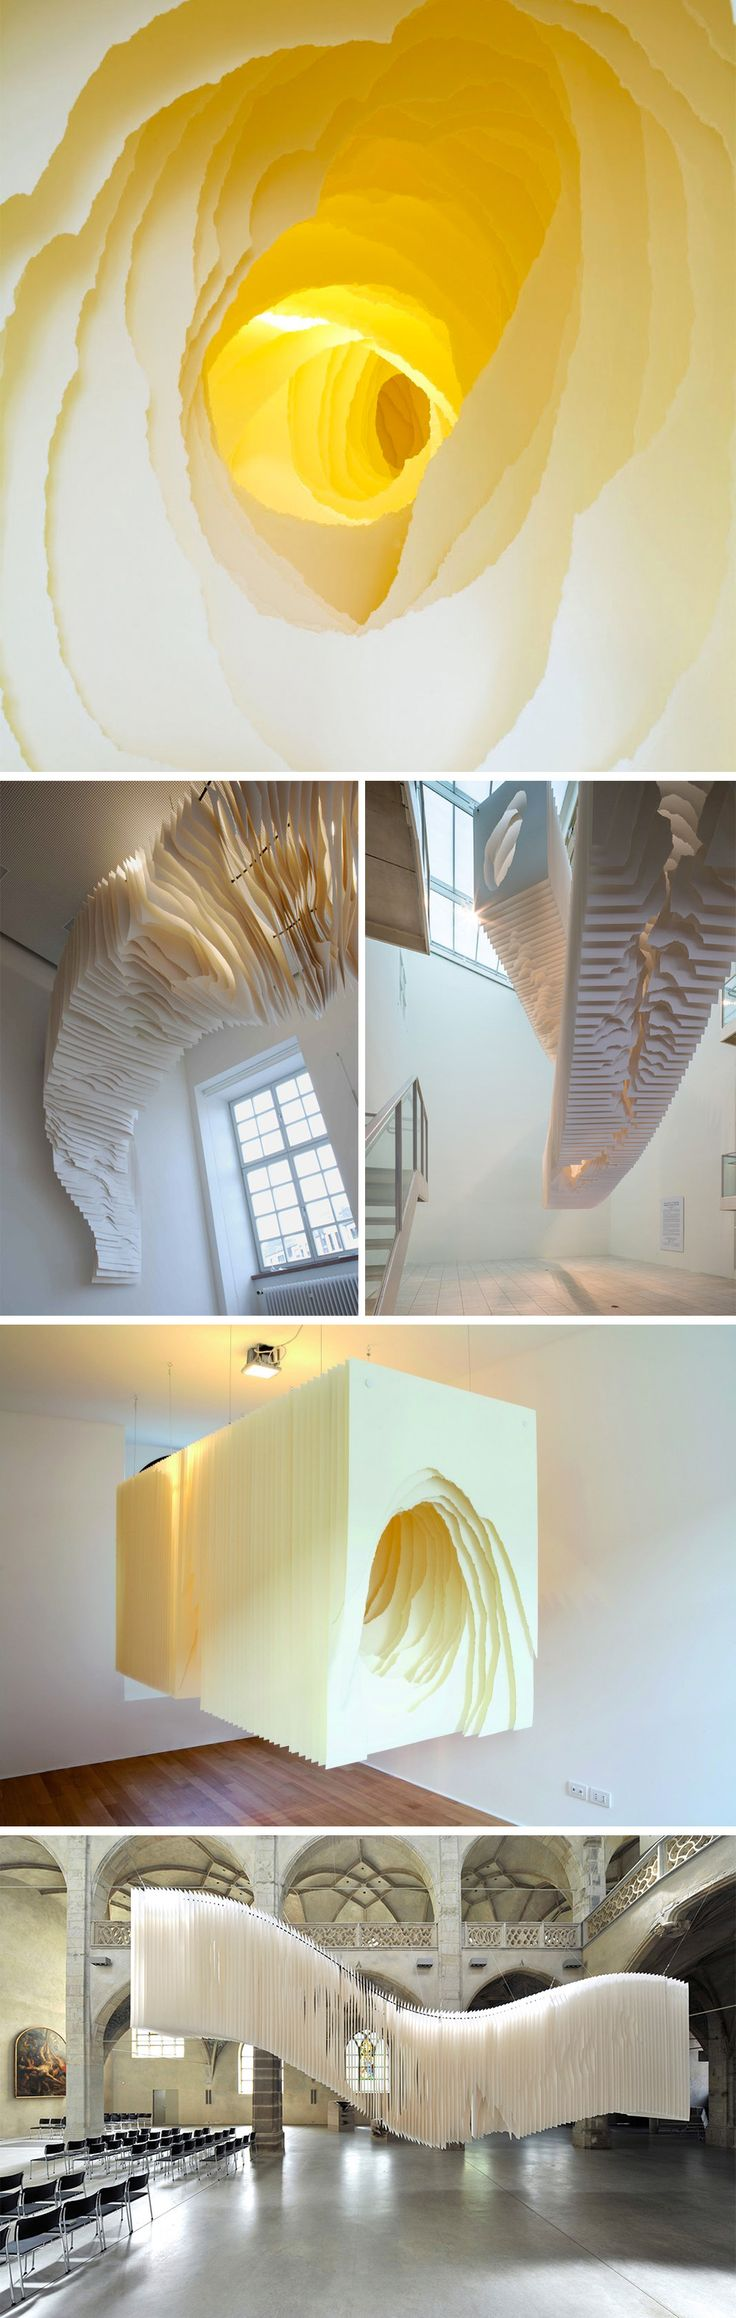 Deep Tunnels and Caves of Suspended Torn Paper by Angela Glajcar